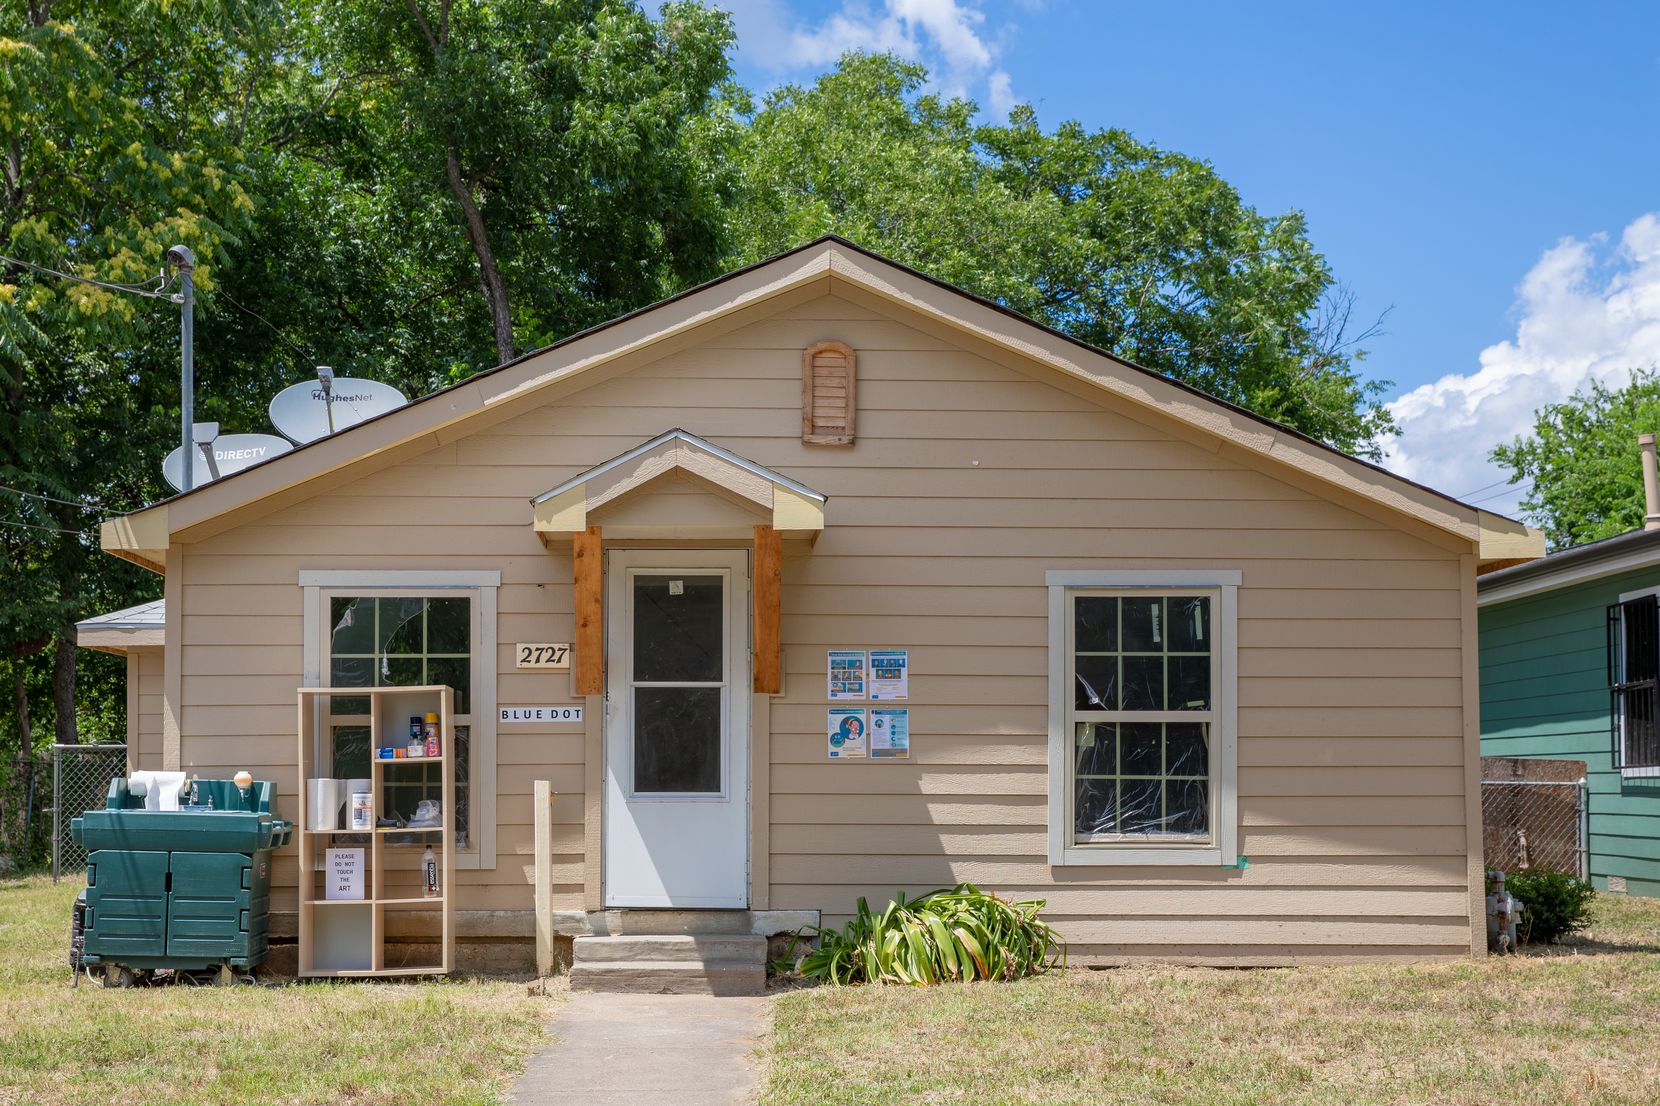 """The """"Blue Dot"""" show runs through 6 p.m. Tuesday in this house at 2727 Rochester St. in South Dallas."""